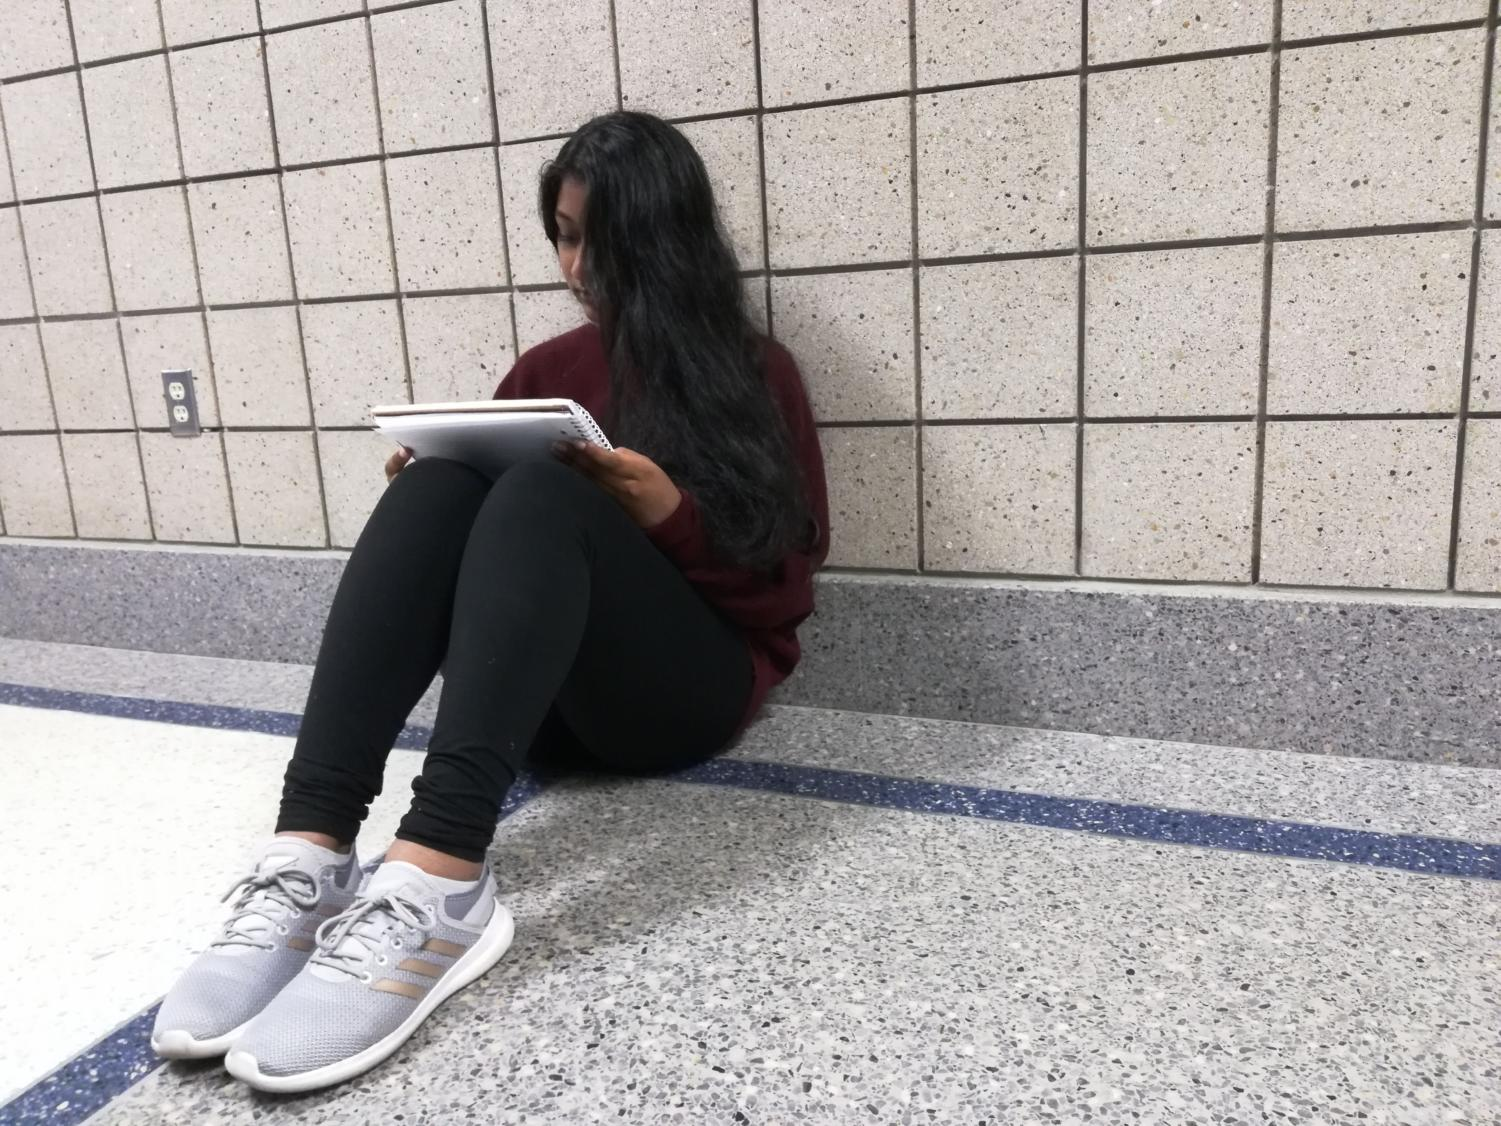 Sophomore Manasa Kesa looks over her notes for AP European History and decides whether or not to register for the exam at the end of the year. AP exam registration will begin Oct. 14 and end Oct. 27.